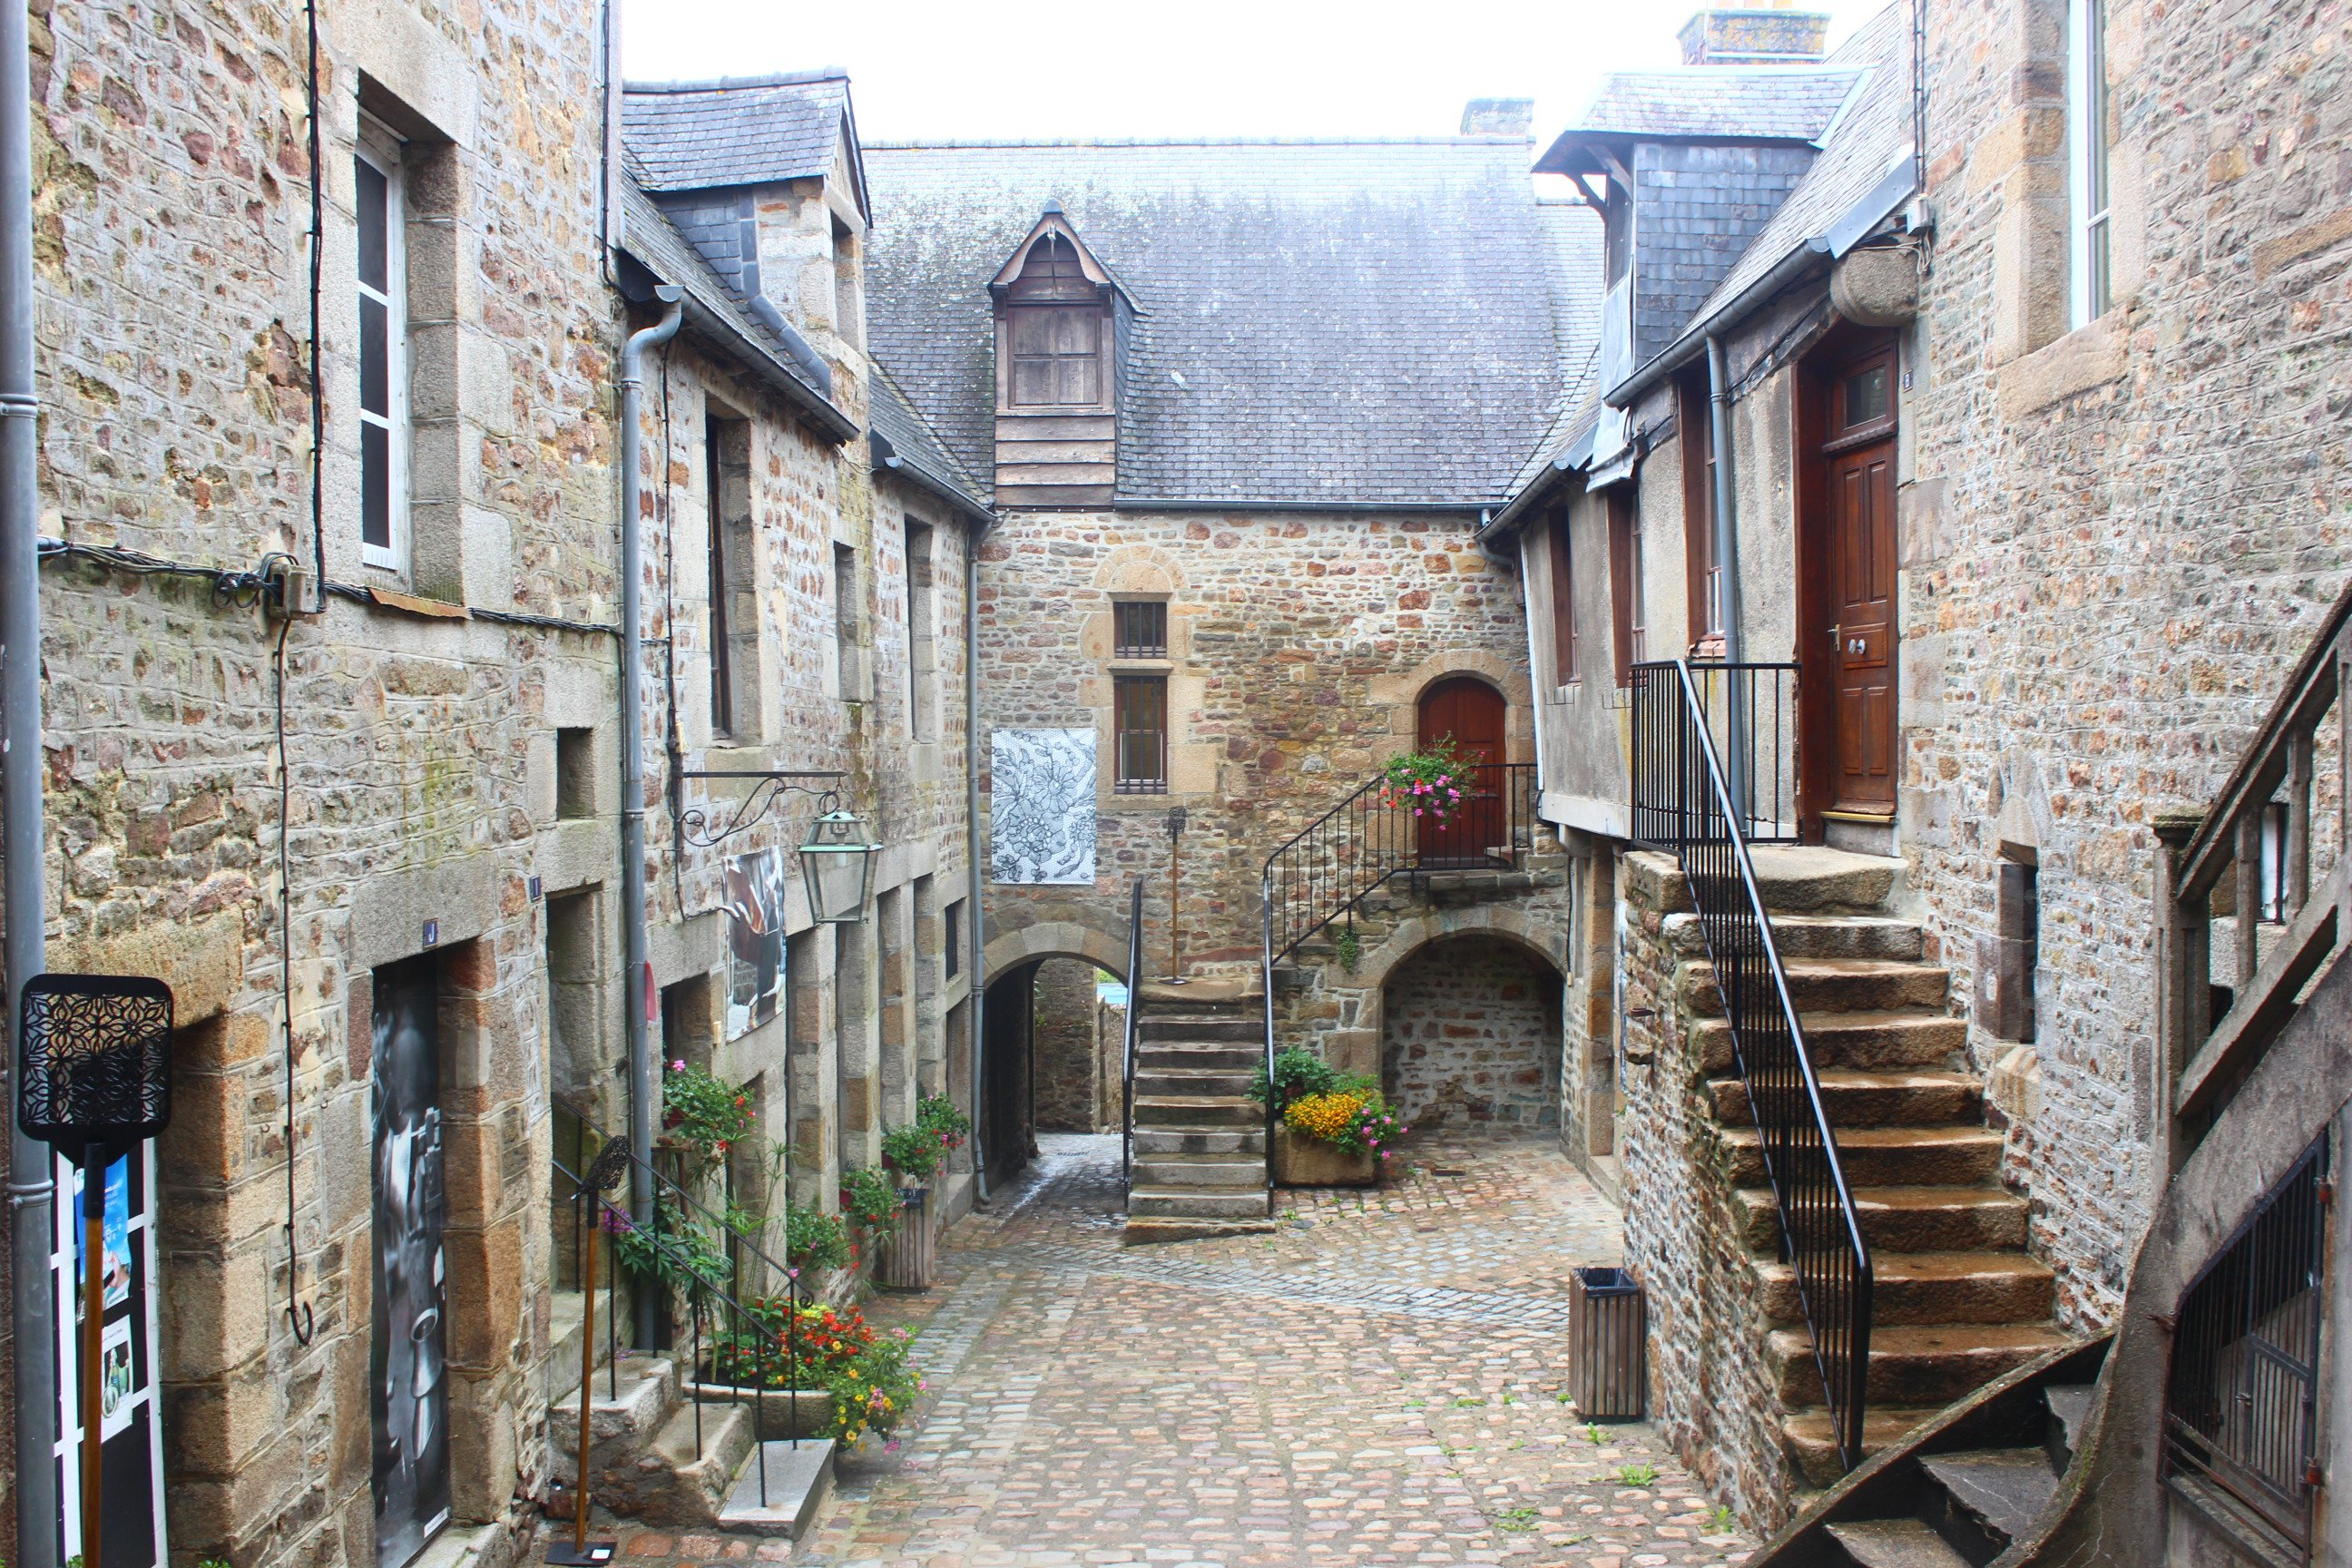 What to do in Villedieu-les-Poeles